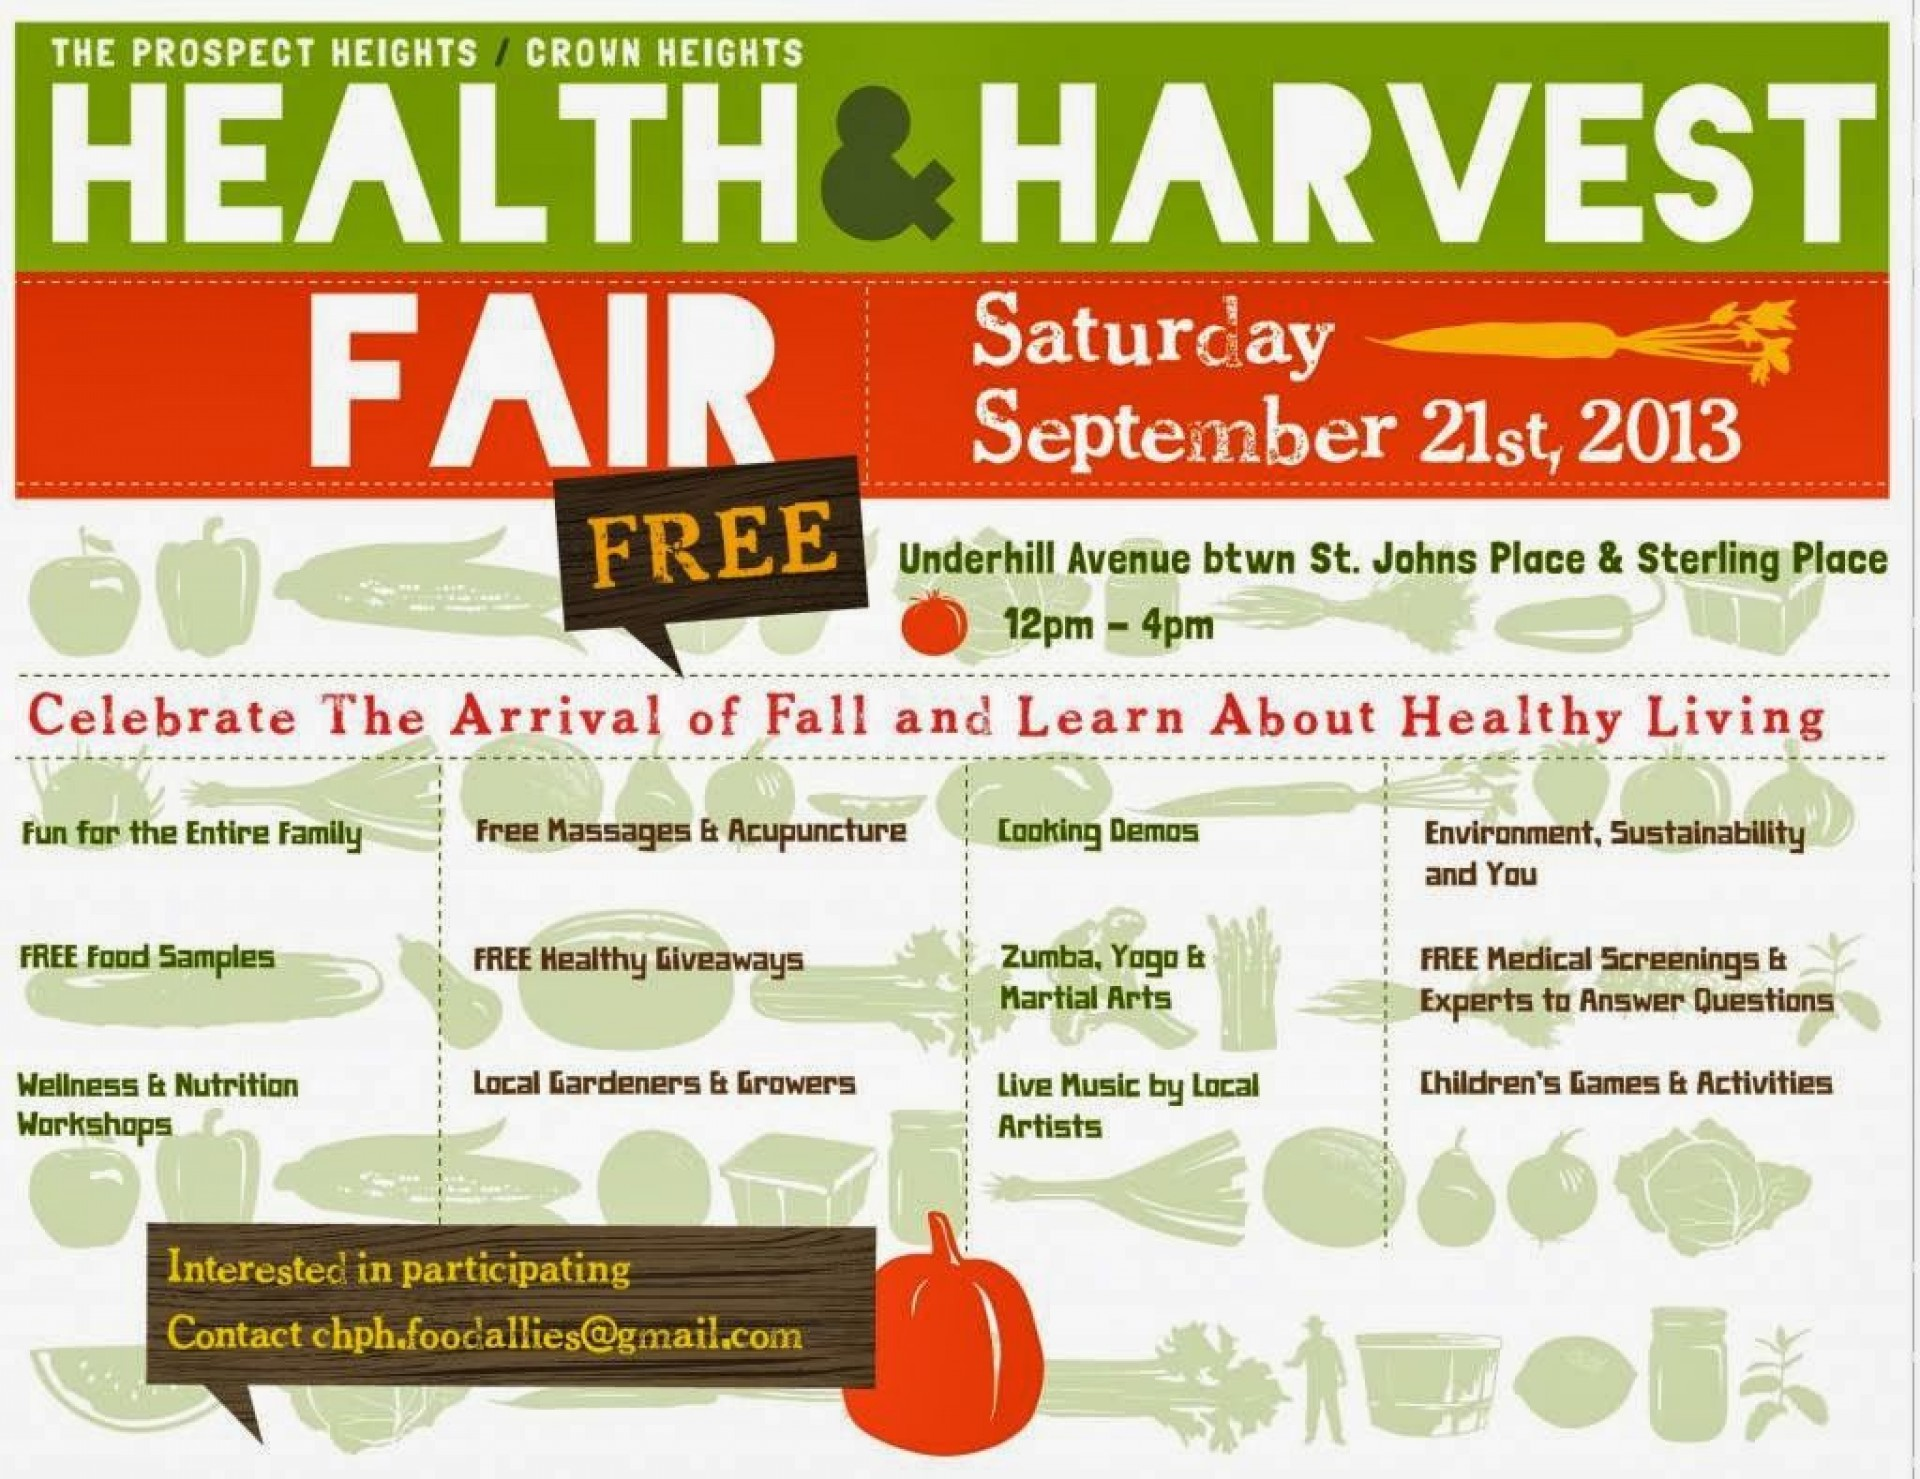 001 Stirring Health Fair Flyer Template Free Image  Download1920